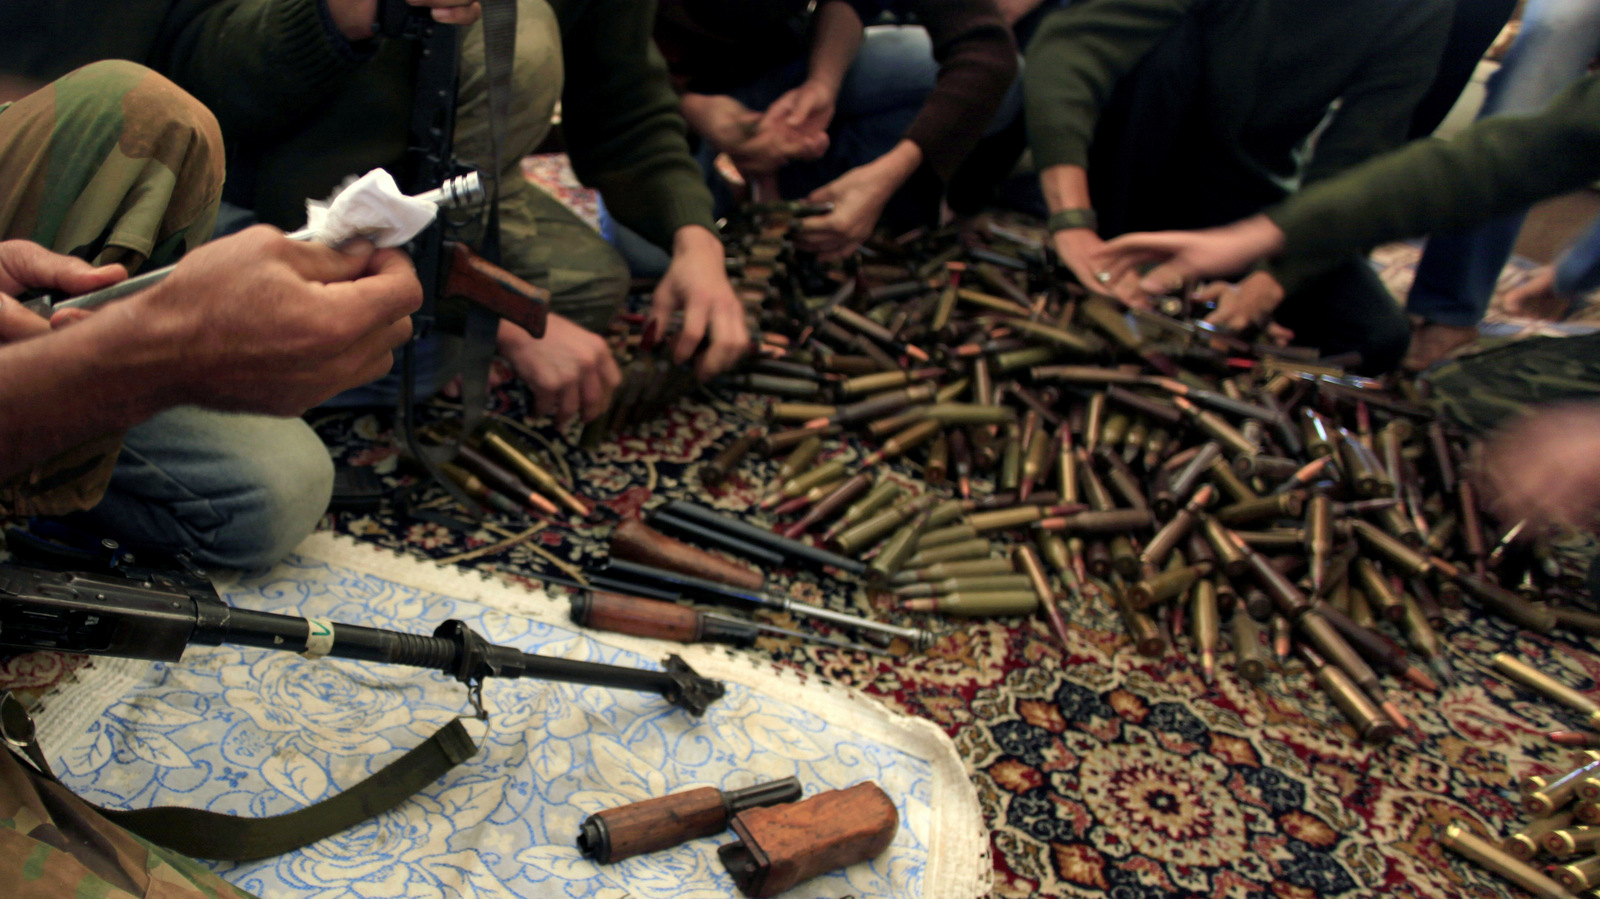 Free Syrian Army fighters clean their weapons and check ammunition at their base on the outskirts of Aleppo, Syria. (Khalil Hamra/AP)